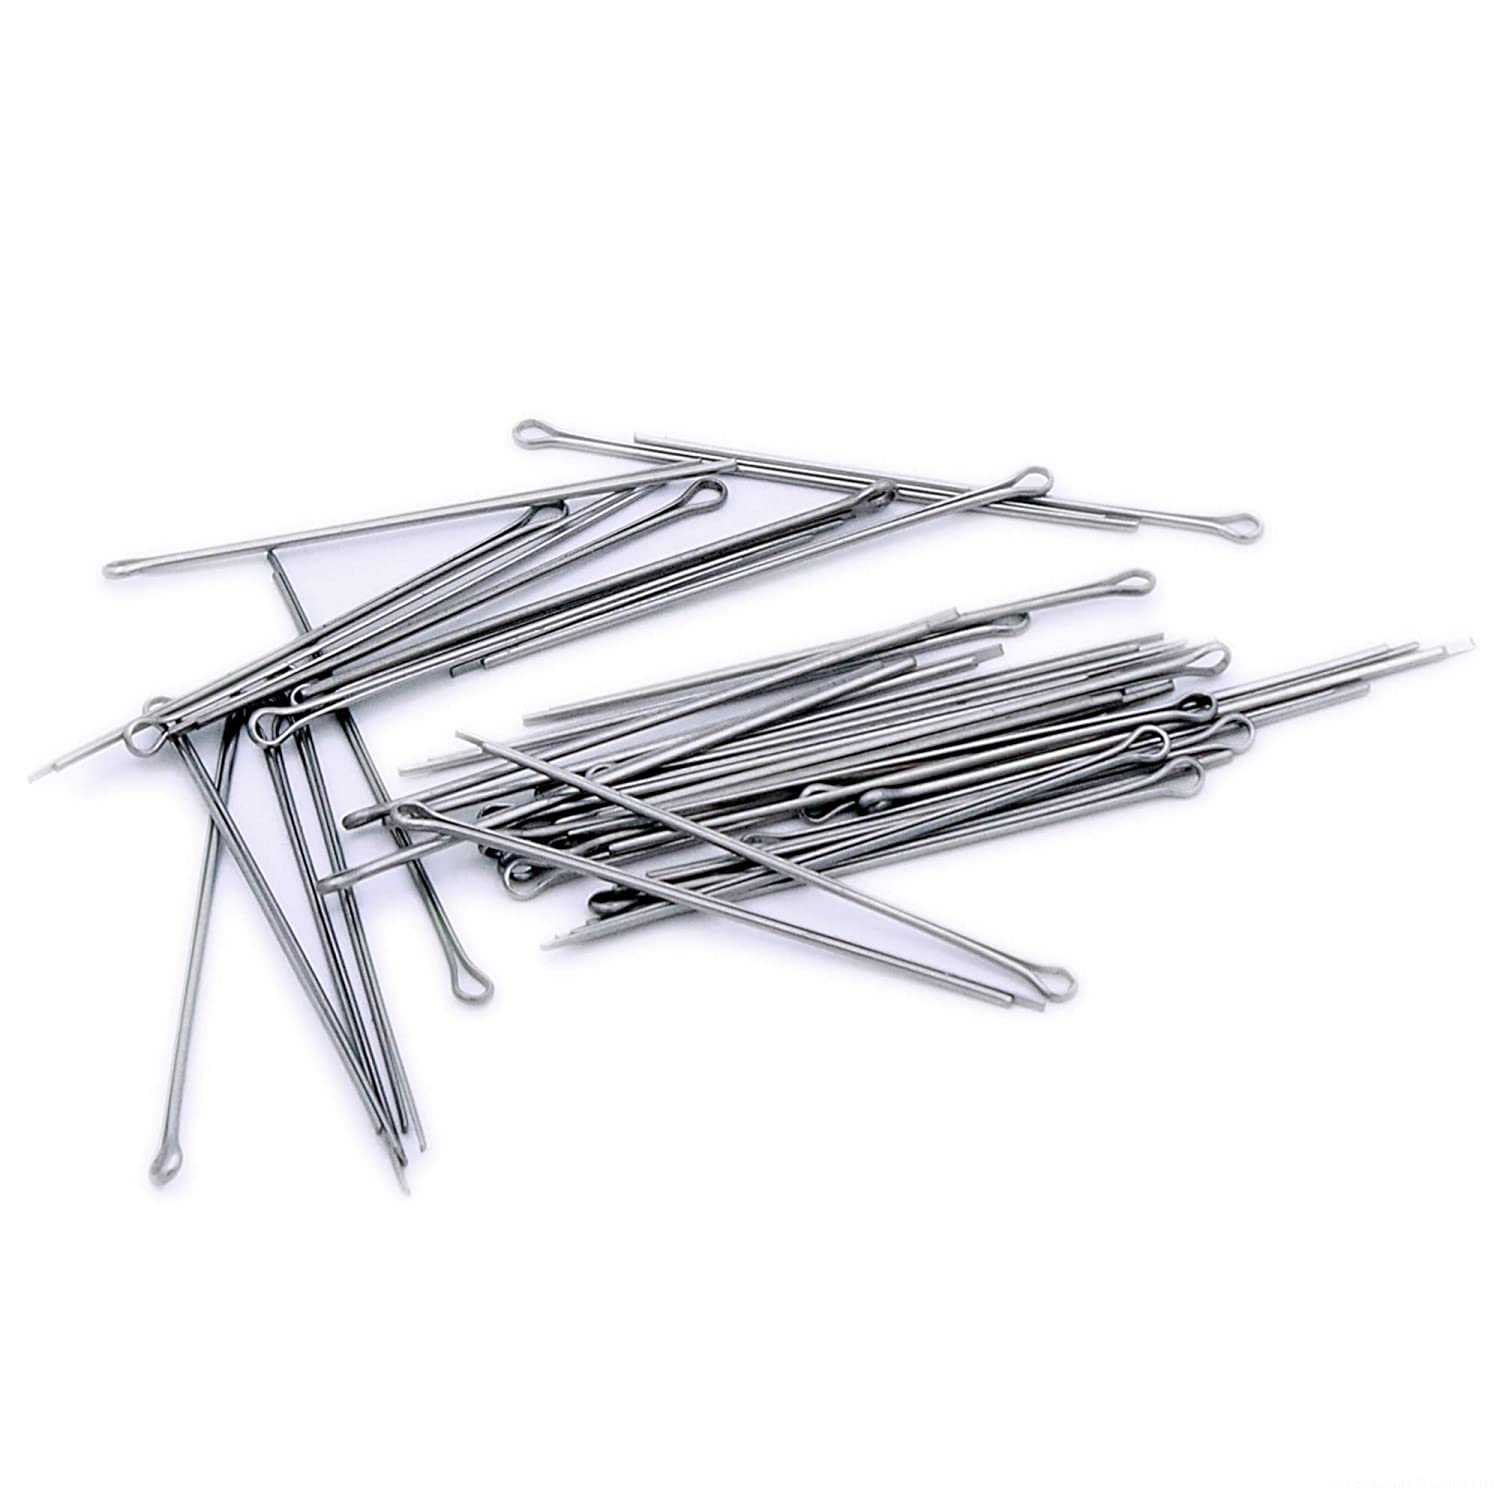 1.2mm x 36mm Split Cotter Pins - Stainless Steel (A2) (Pack of 40) Singularity Supplies Ltd